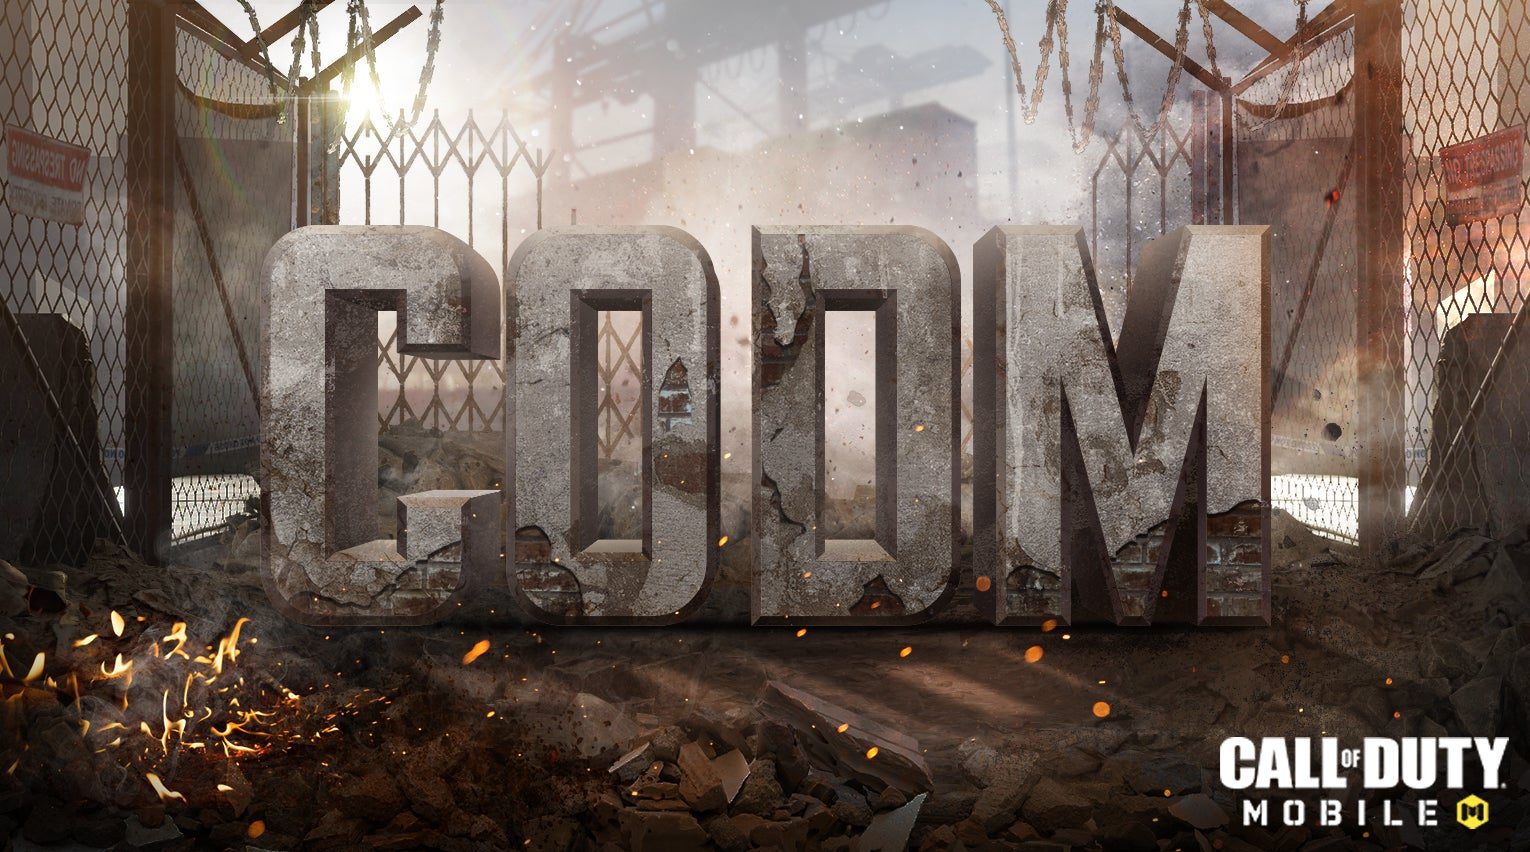 Download Call of Duty Mobile 1.0.20 APK + OBB Files | CODM Season 2 Update